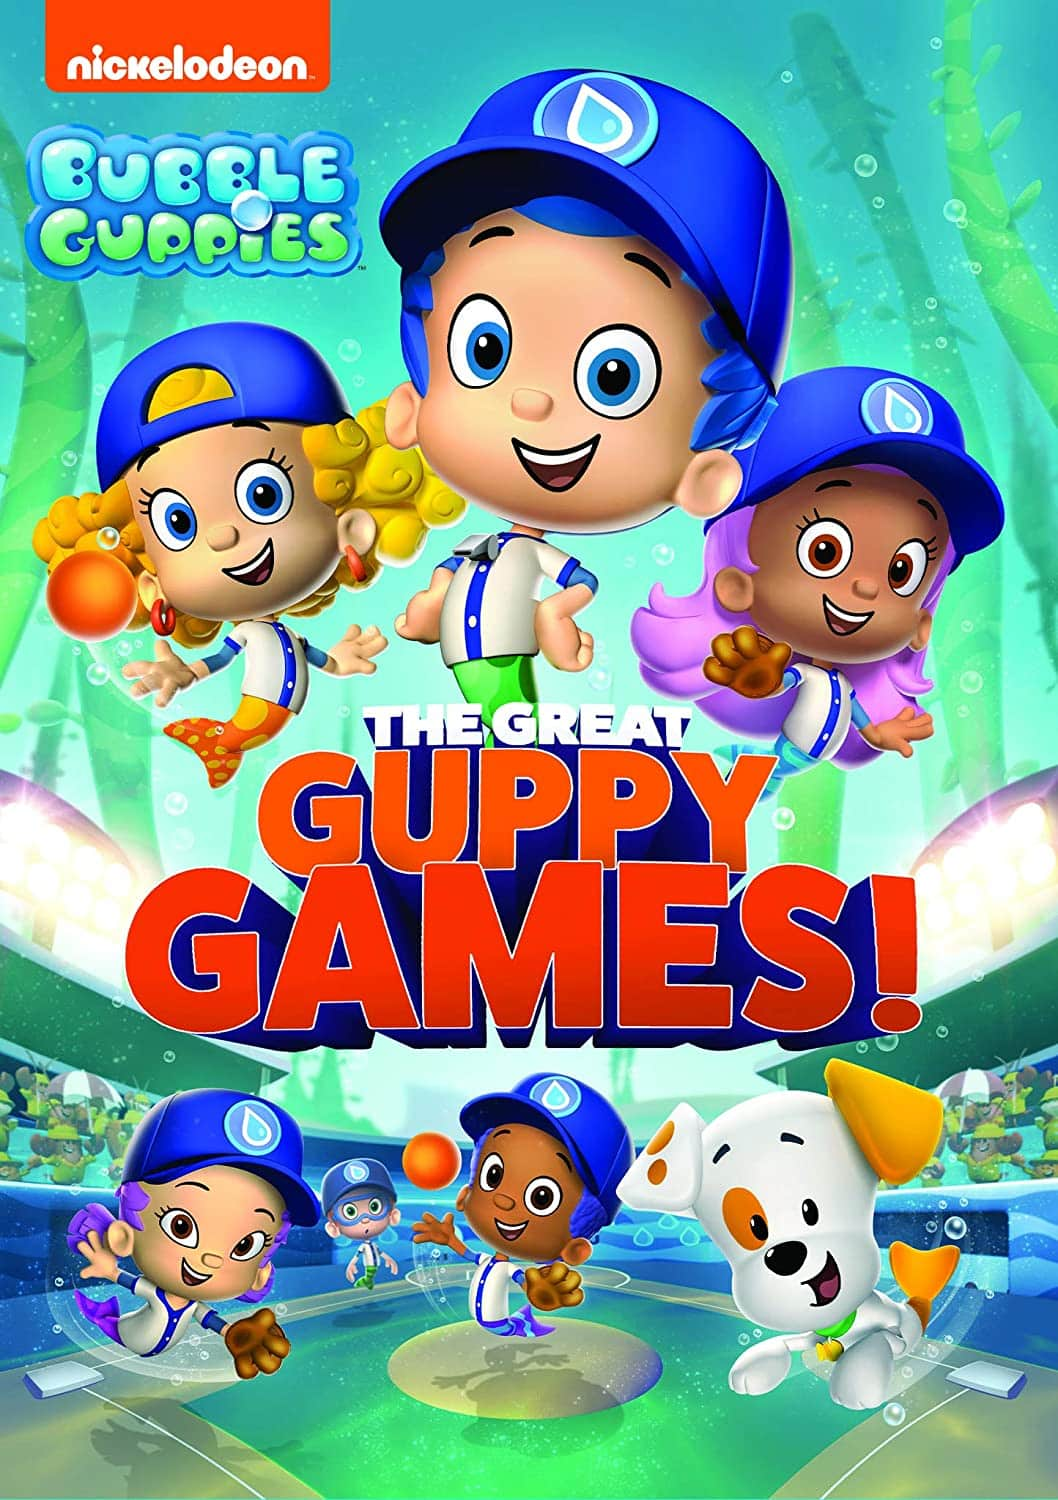 Get Ready For The Great Guppy Games Bubble Guppies Coloring Pages